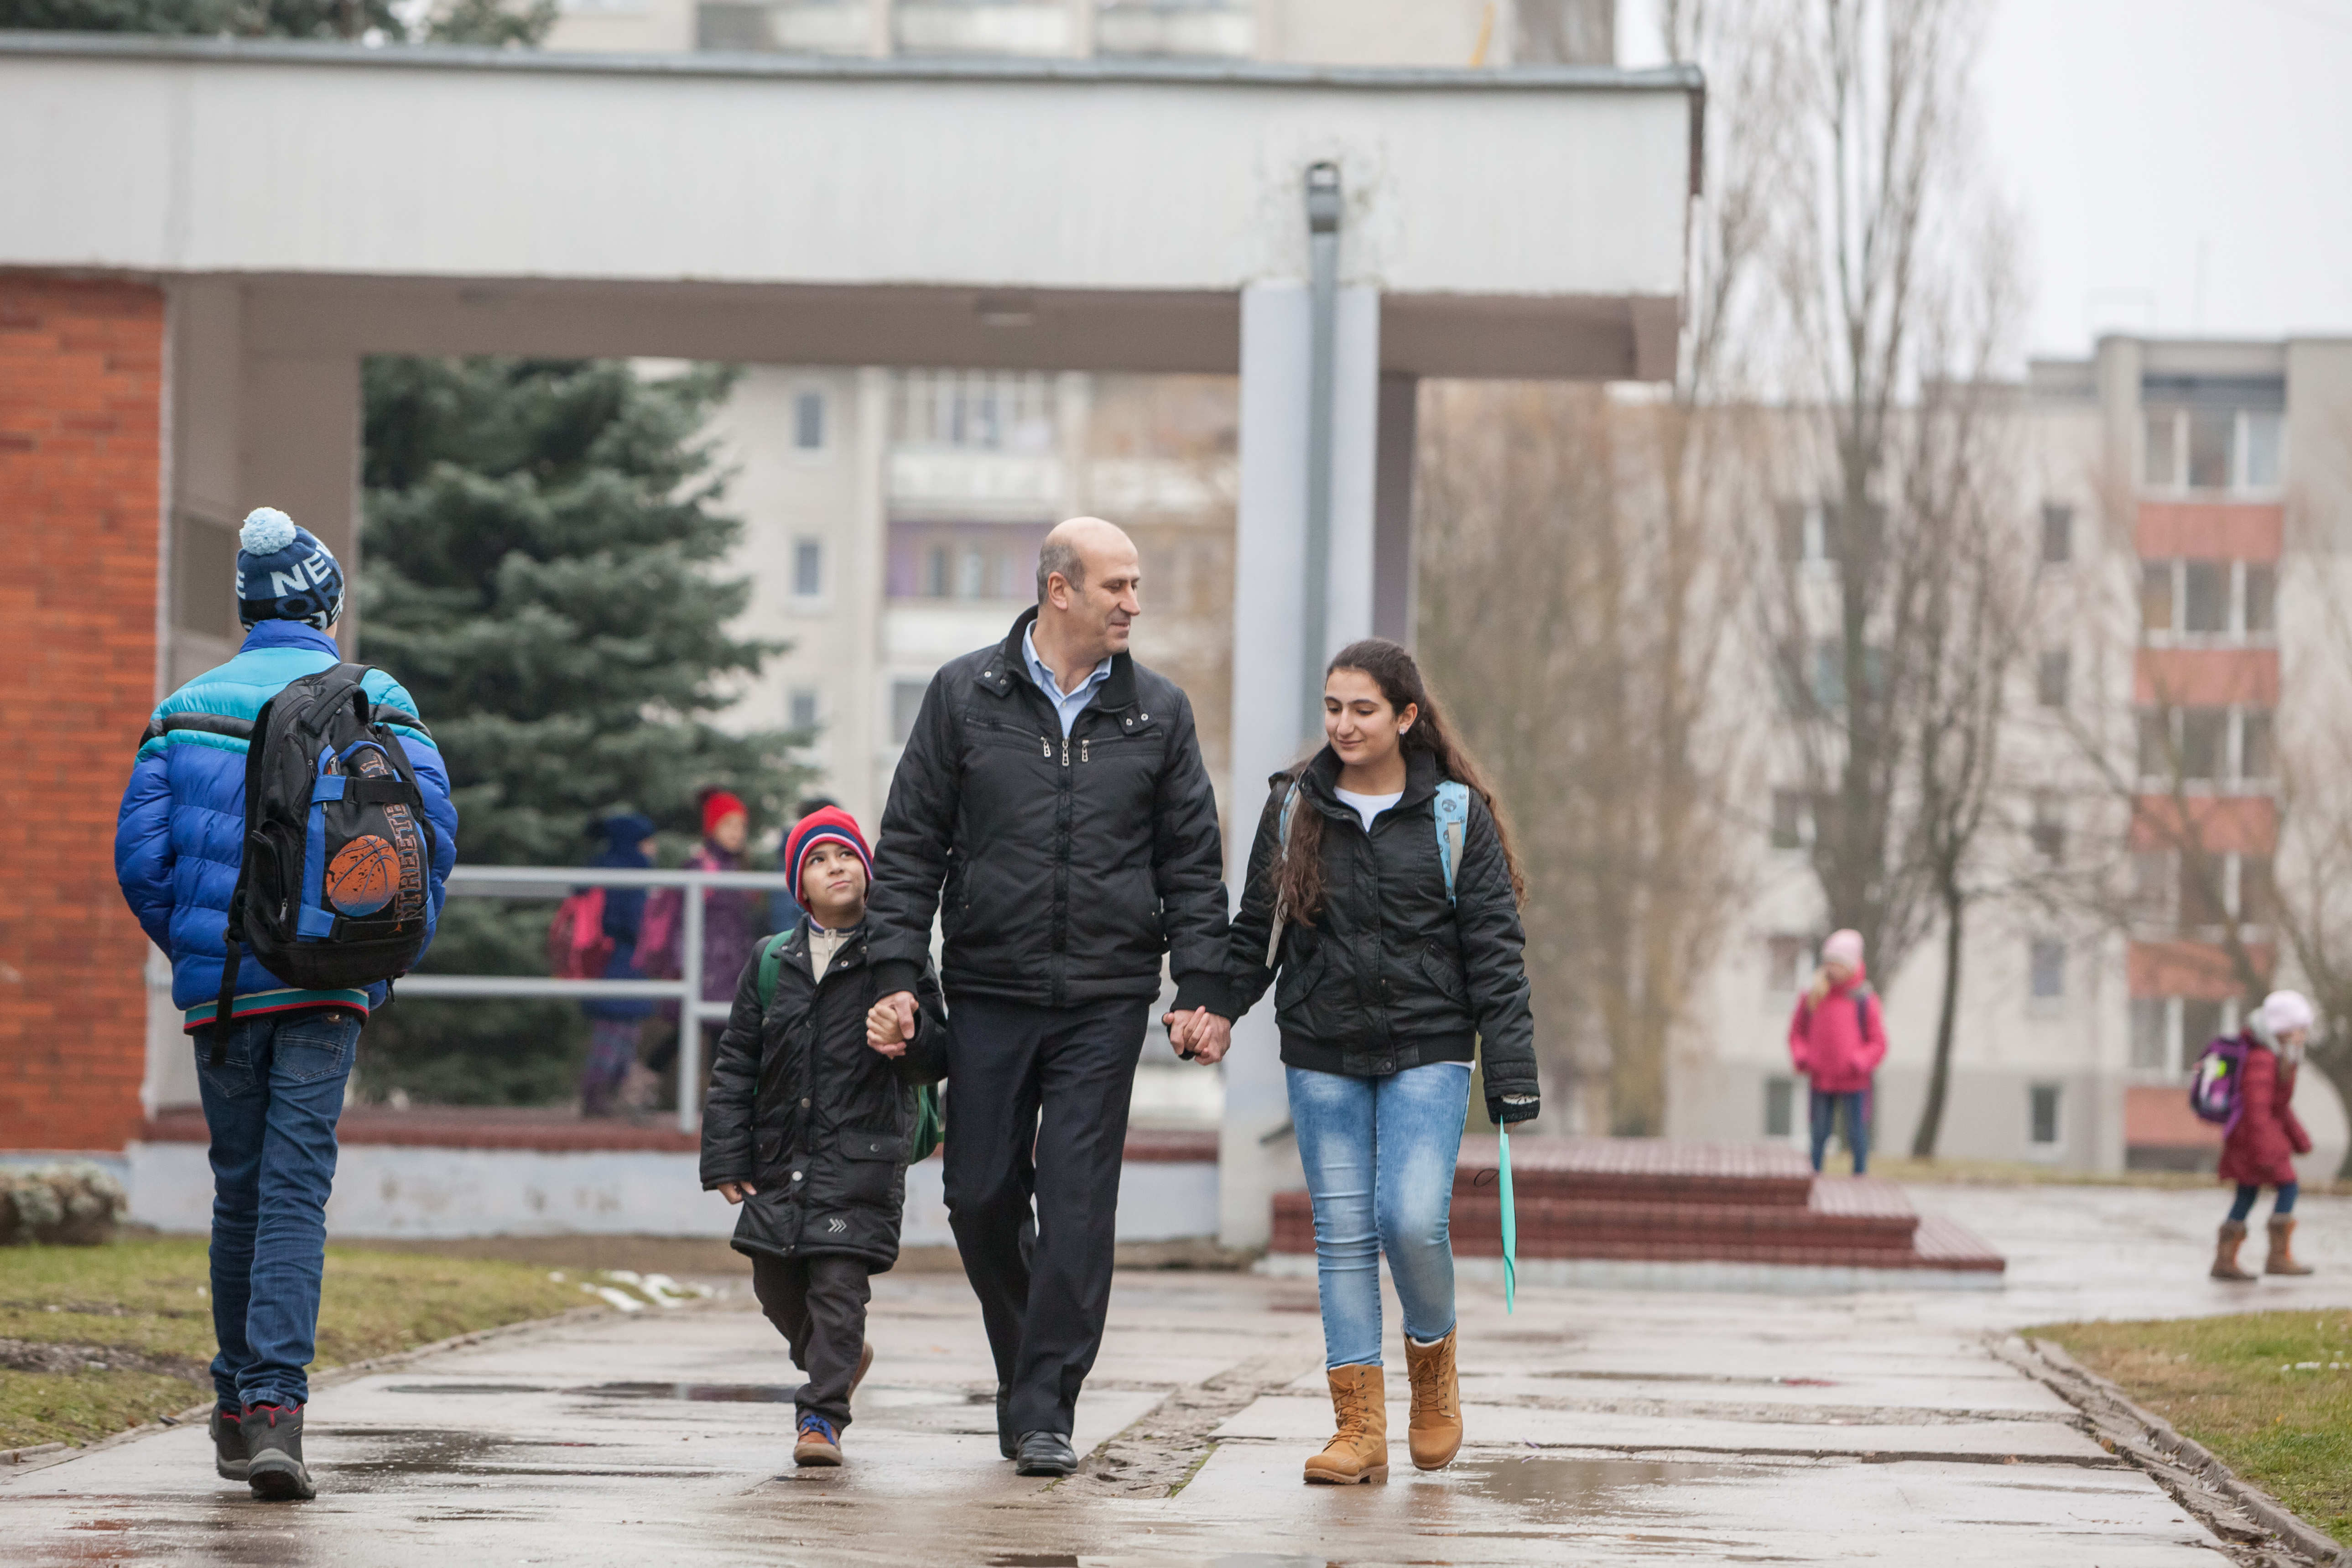 Pierre and his wife Aida now live in Jonava with their three children. Pierre works as a translator and often travels to other cities where his services are needed. He also picks up the younger kids Sam and Petra from school every day.